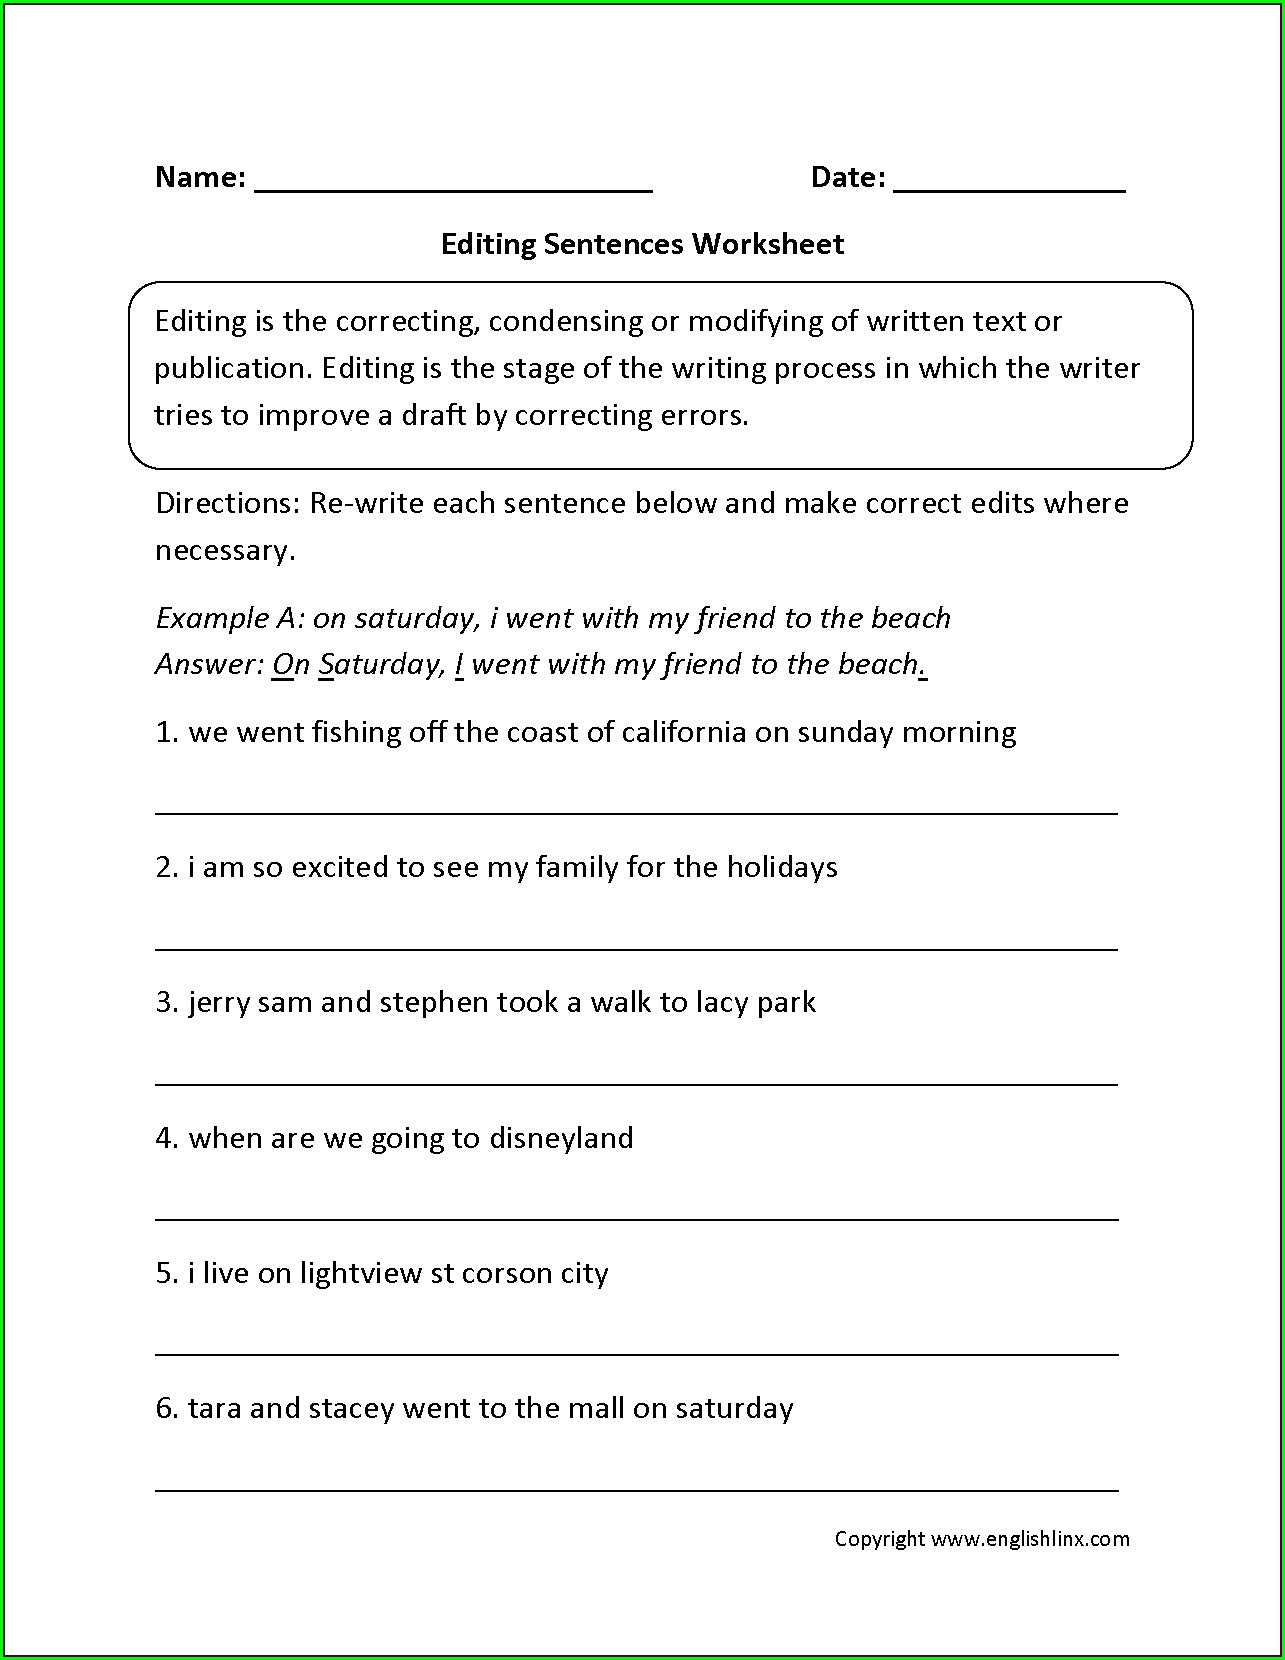 Editing Worksheets 4th Grade Editing Worksheet Sentece